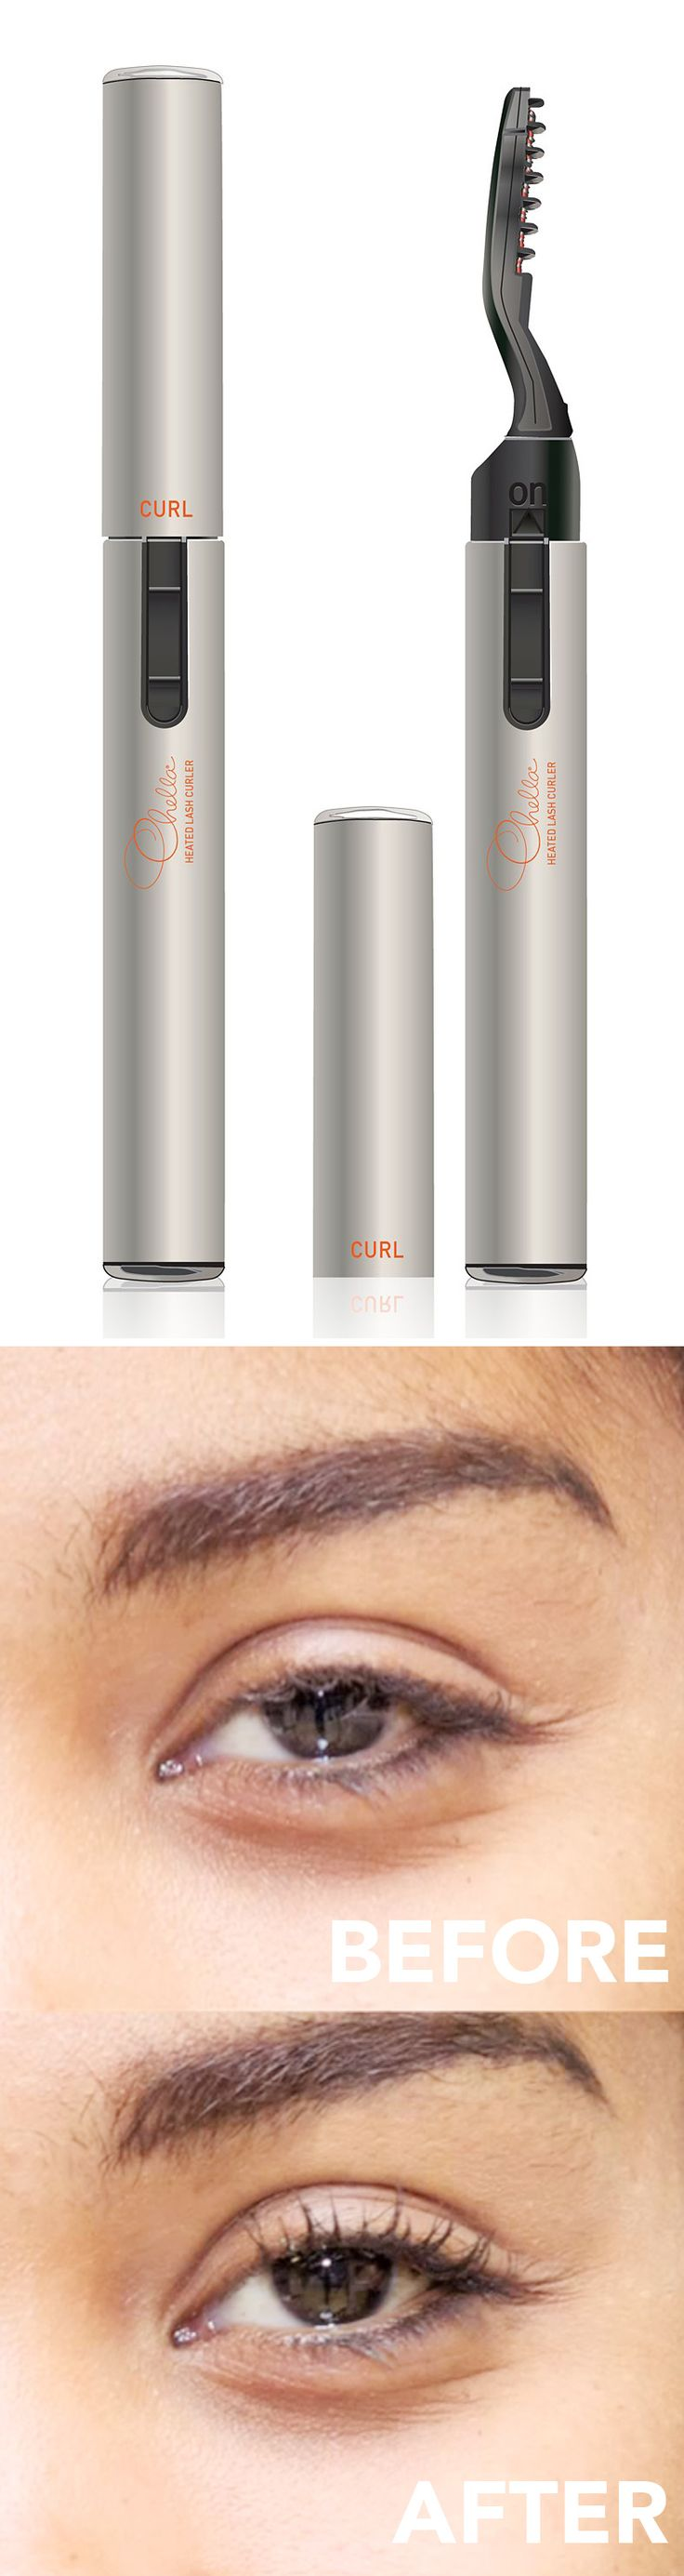 Heated Lash Curler - use after you apply mascara. I need to try this.